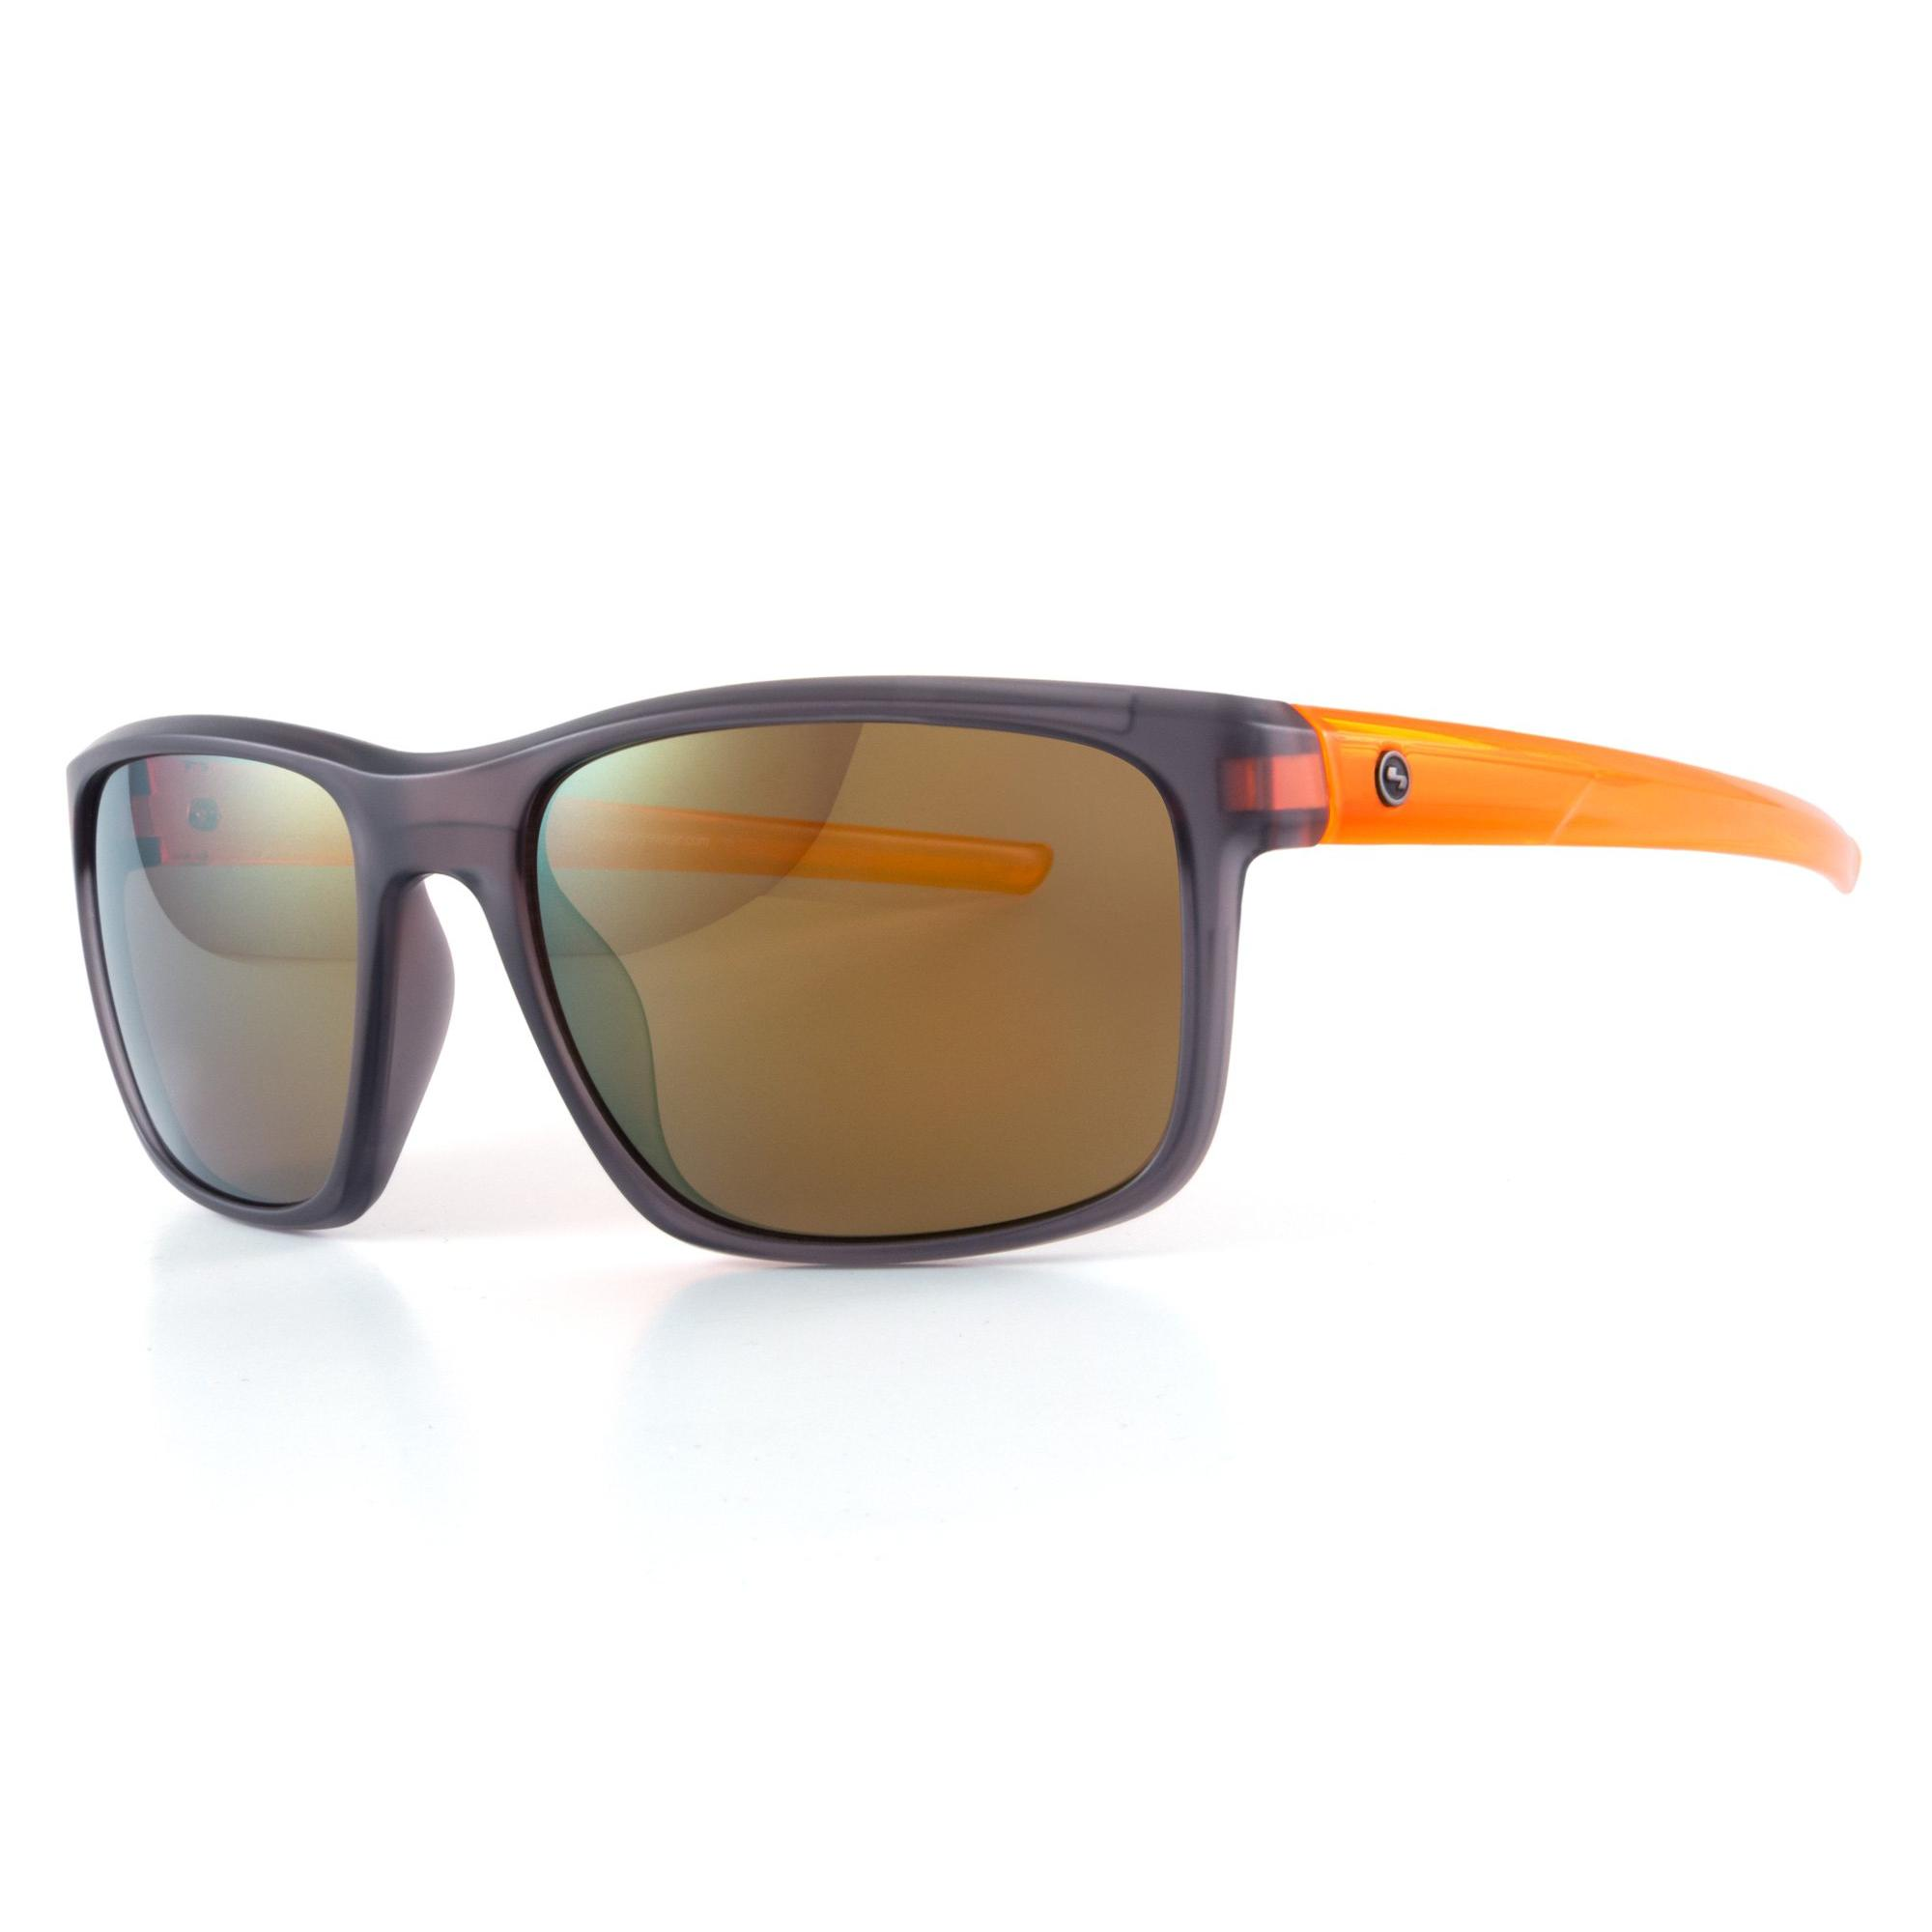 Men's Plasma Sunglasses - Grey/Orange